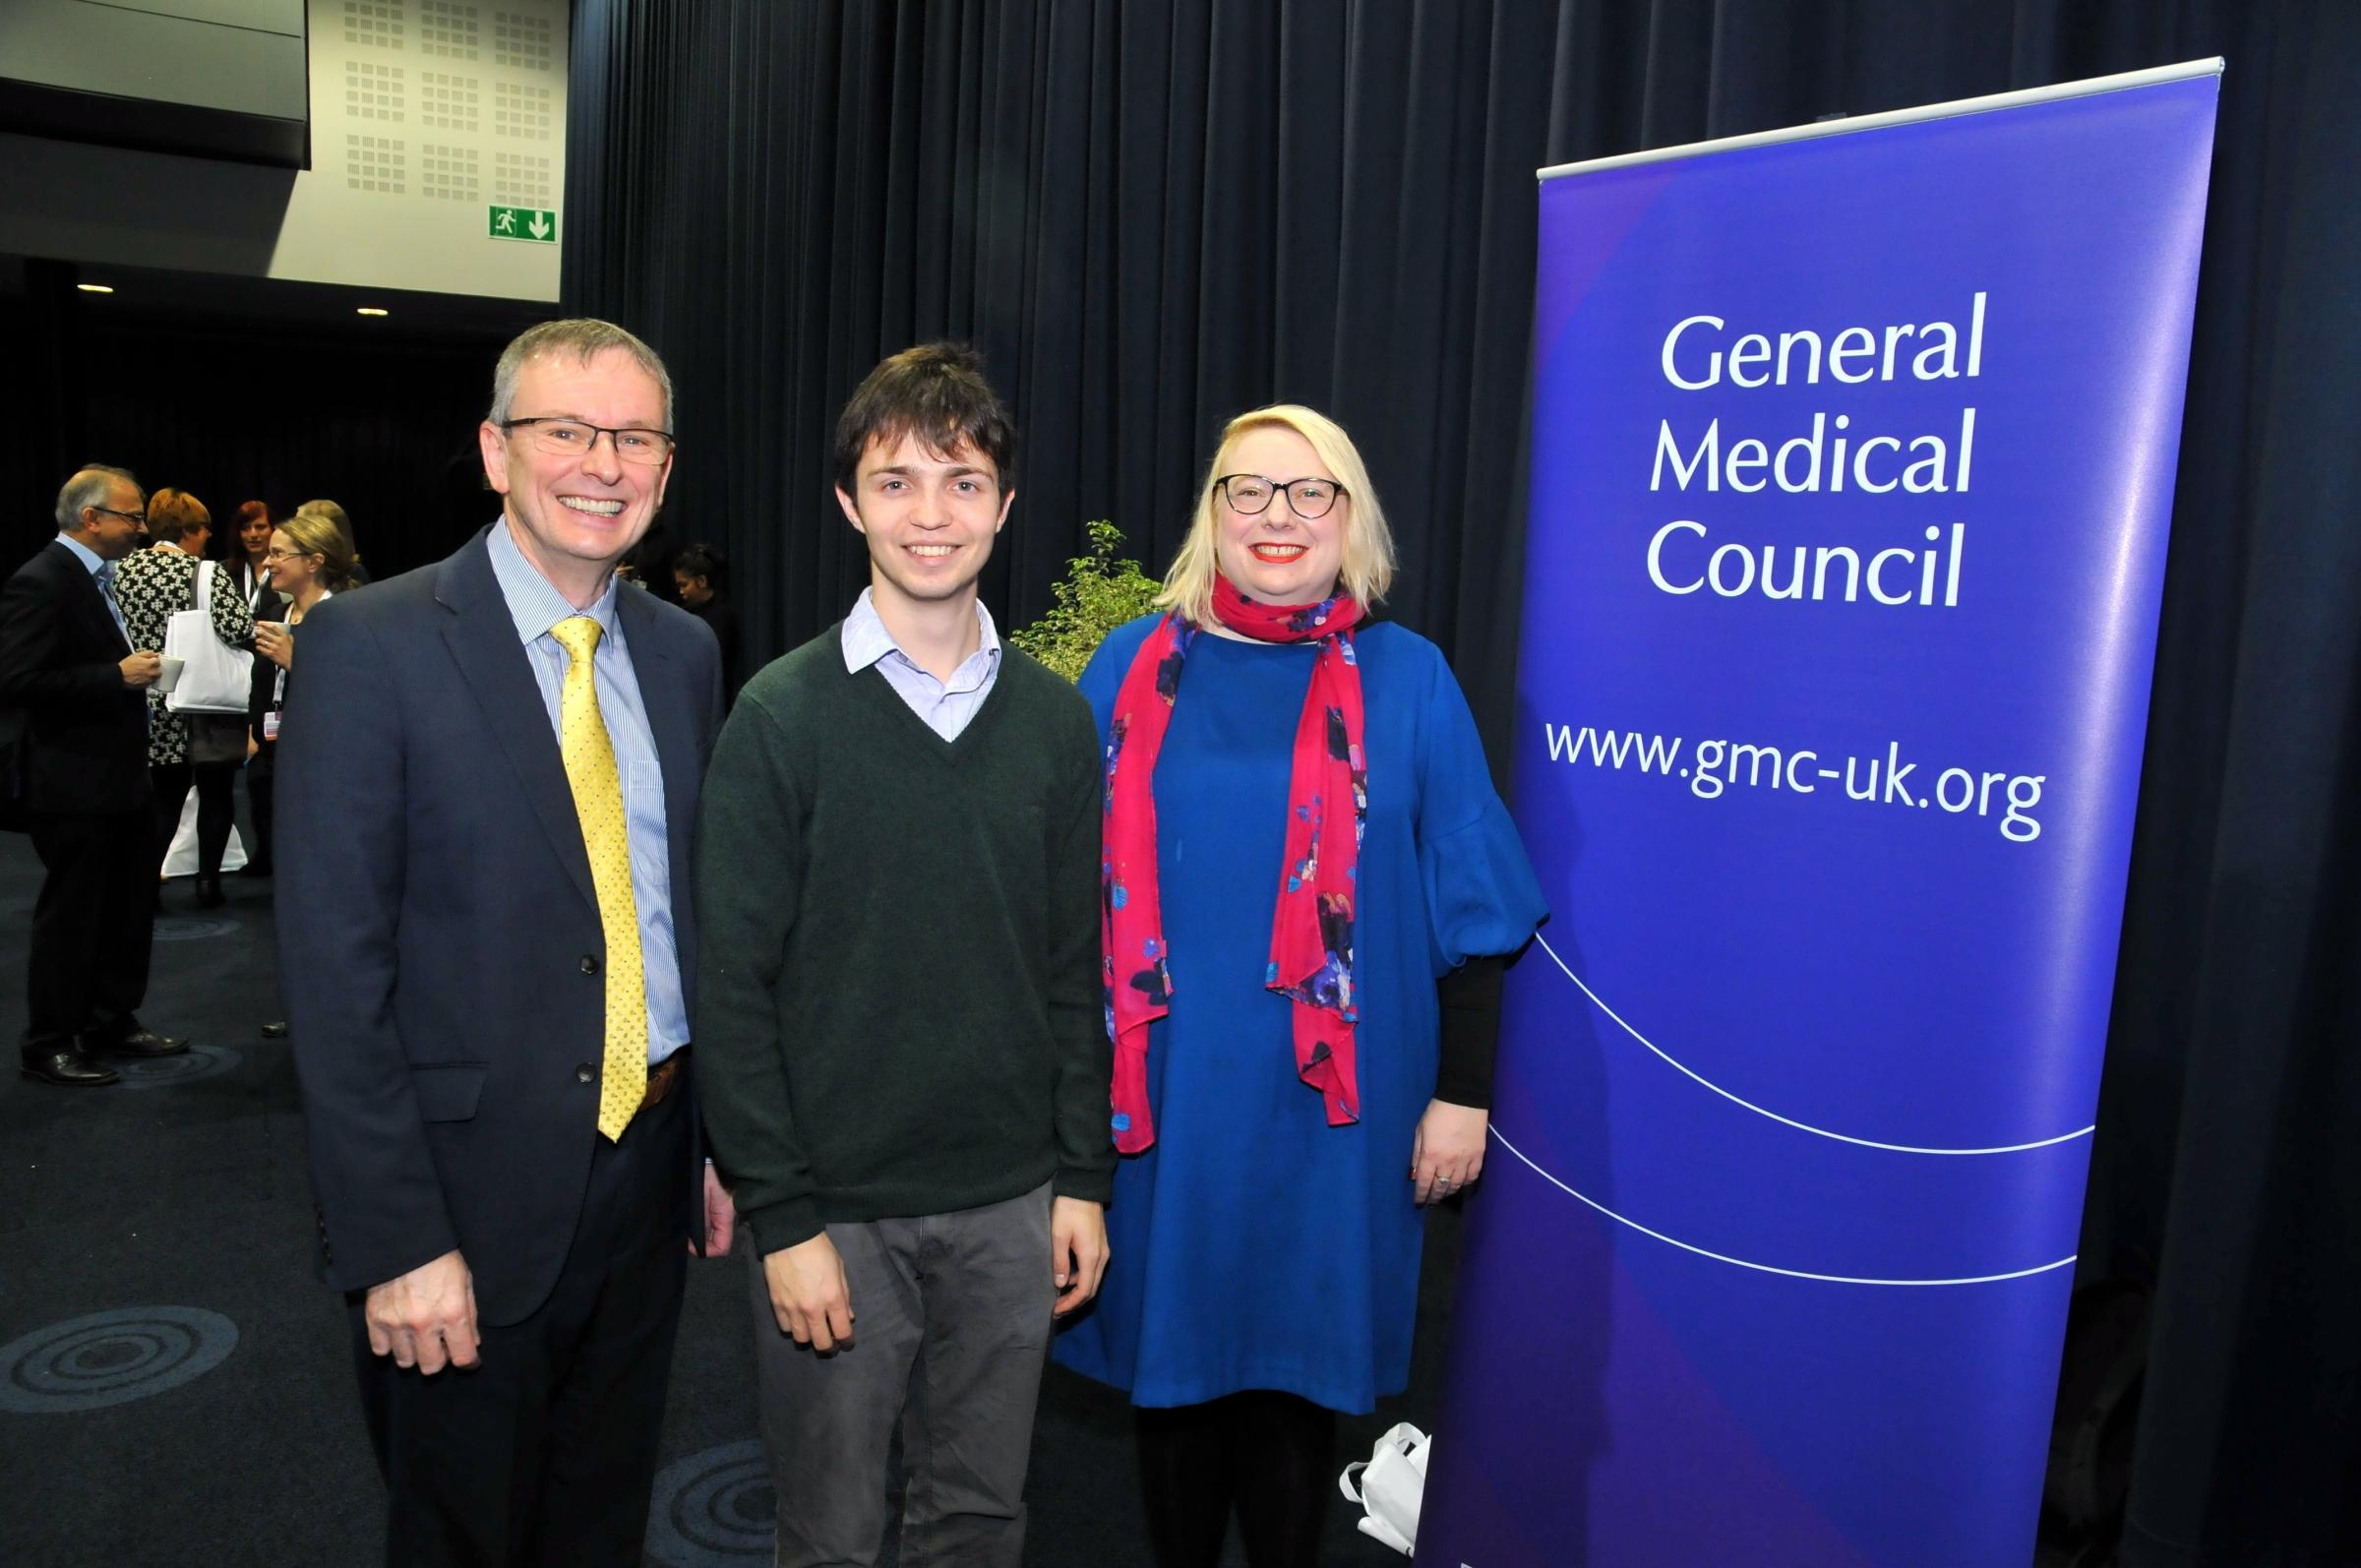 From left, Dr Colin Melville, the General Medical Council's Director of Education and Standards, Charles Pope and Clare Owen, Policy Adviser at Medical Schools Council.